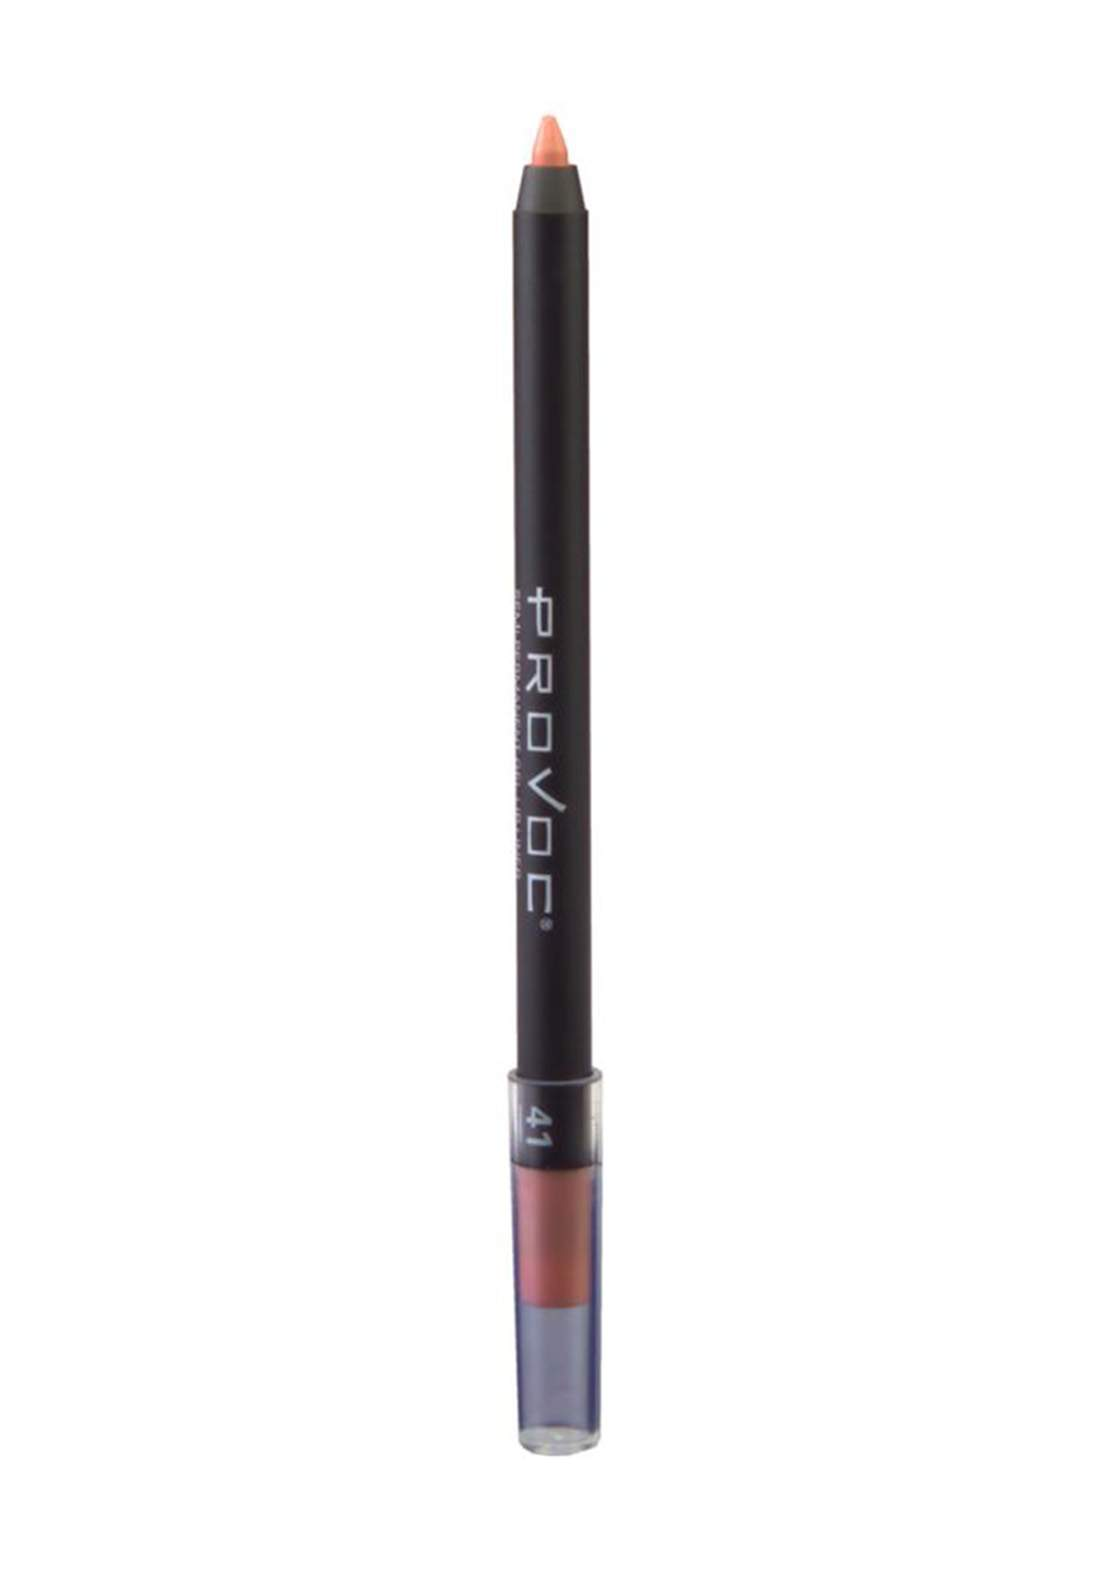 Provoc 353-0024 Semi Permanent Gel Lip Liner Pencil No.41 Kiss Me In The Nude محدد  الشفاه